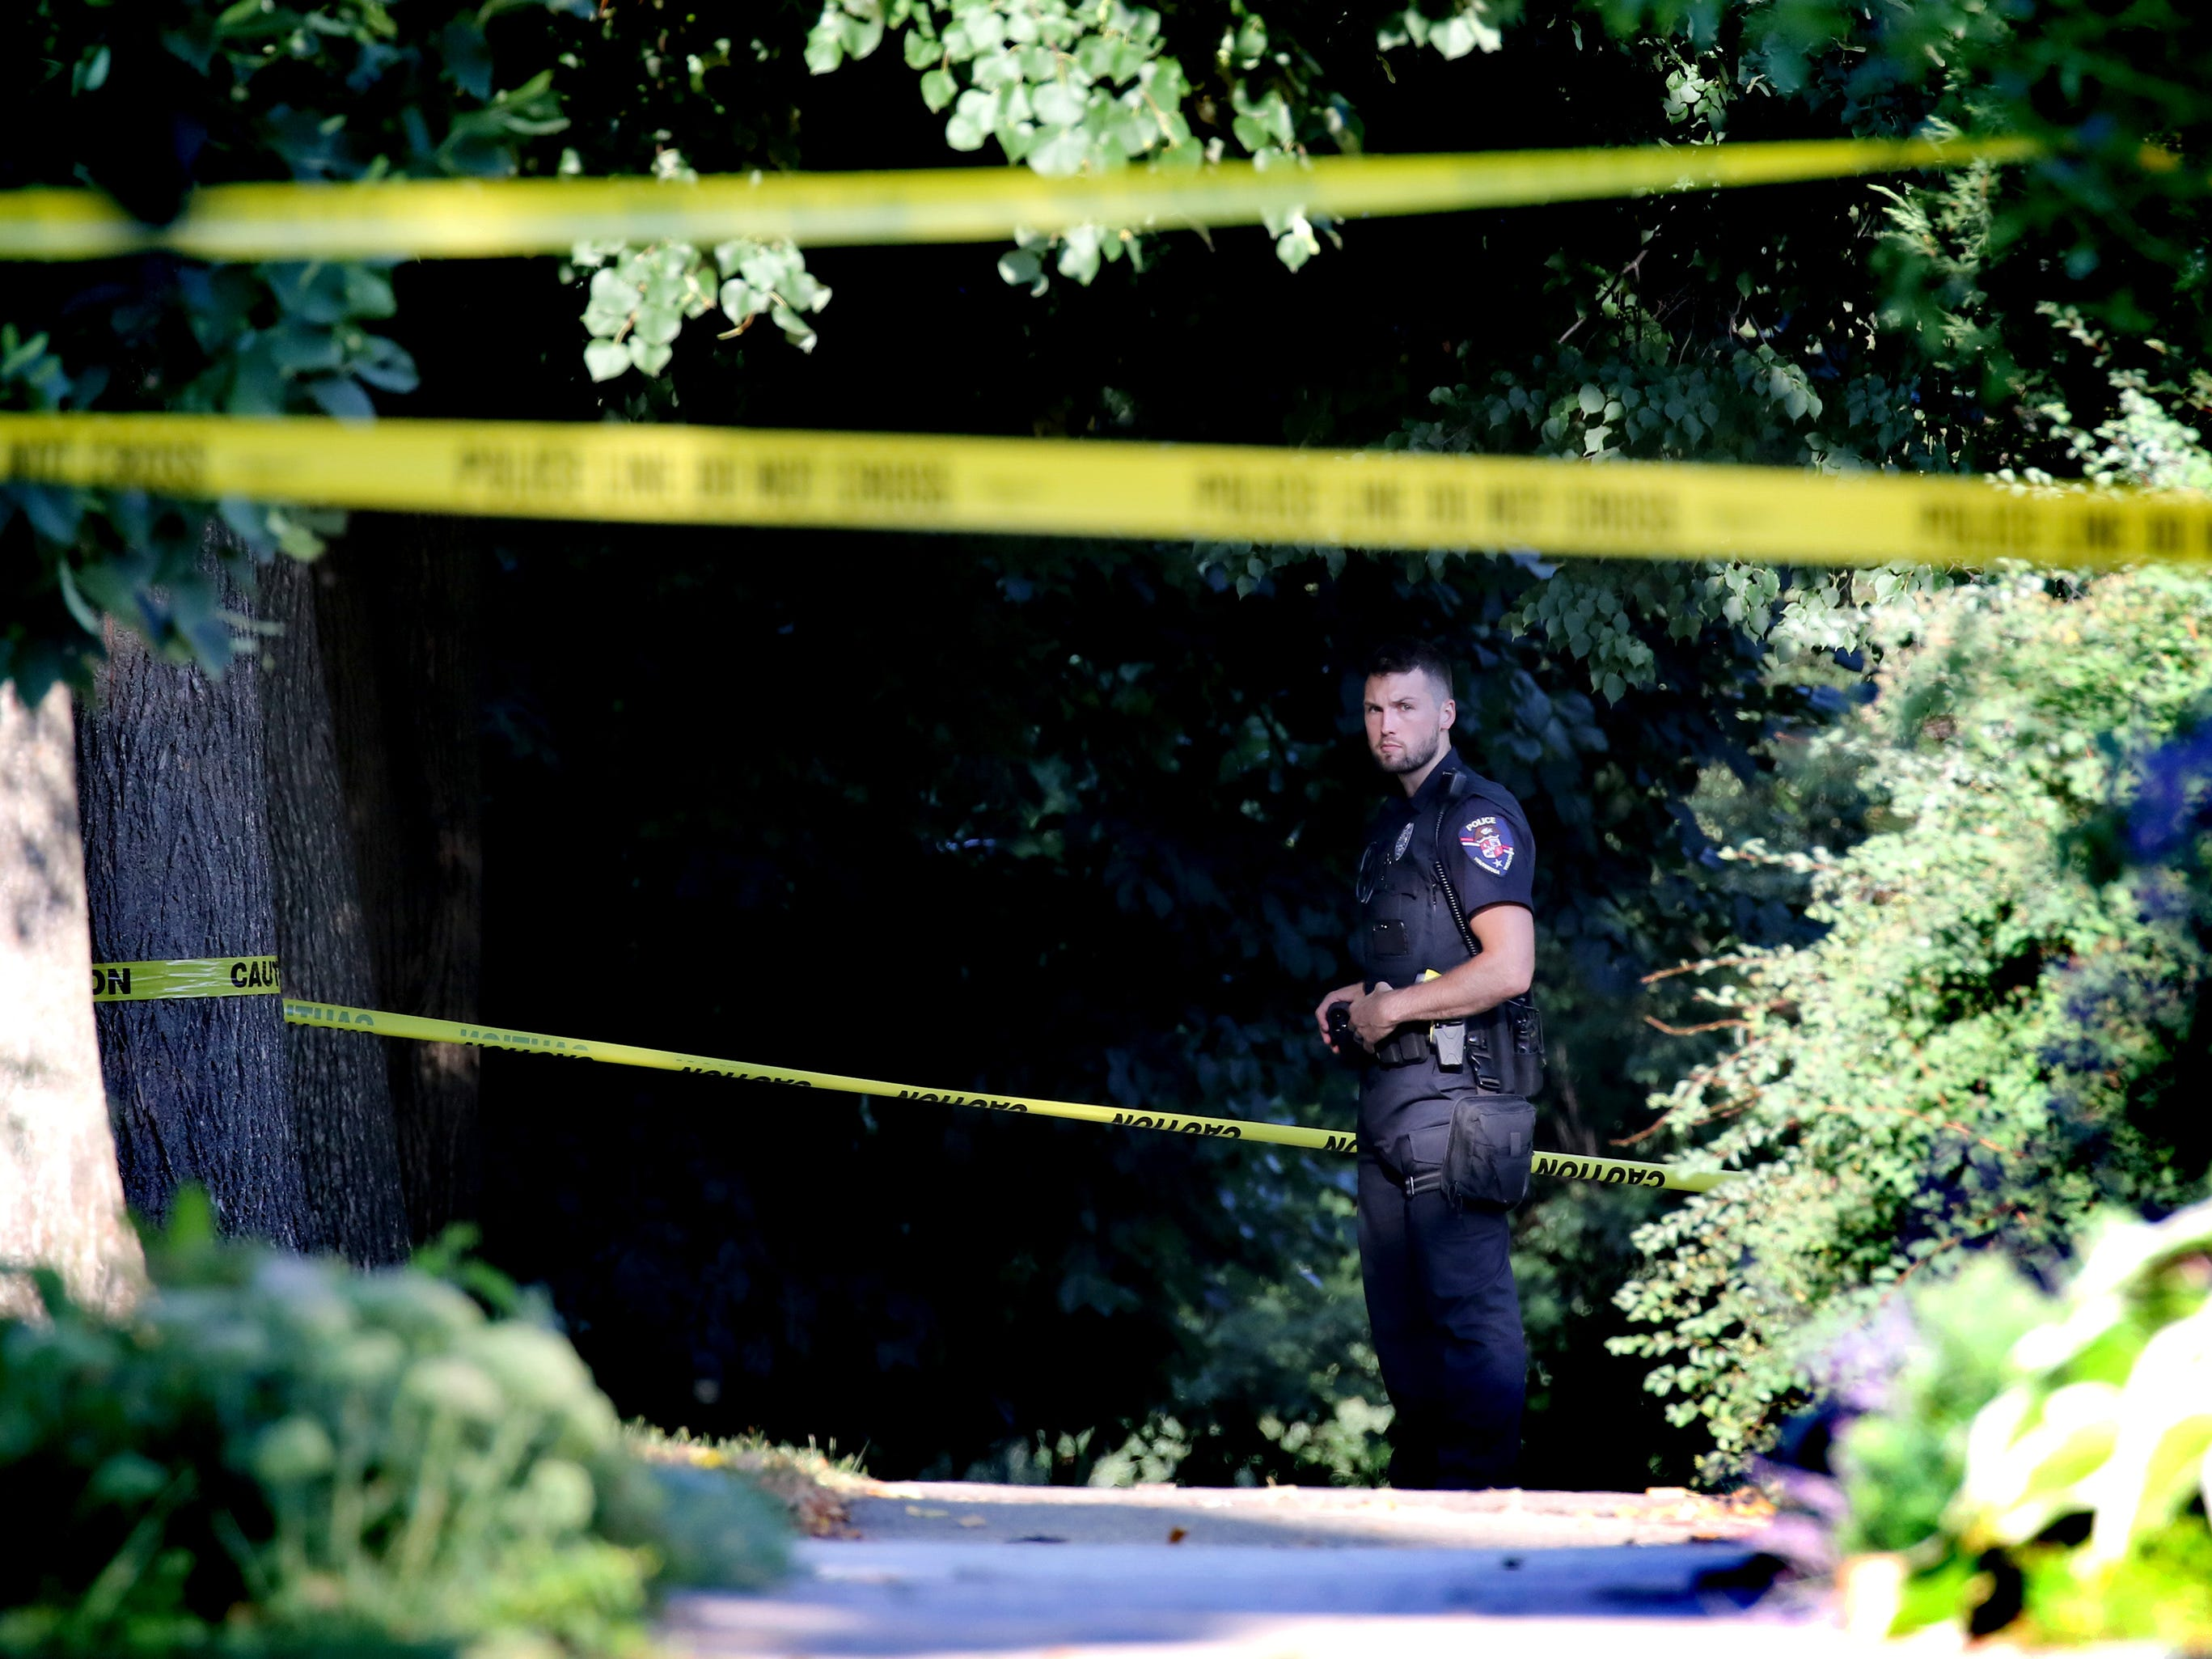 Crime scene investigators respond to a home in the 7900 block of Warren Avenue in Wauwatosa following reports of shots fired on Aug. 22. The Milwaukee County Medical Examiner was notified.